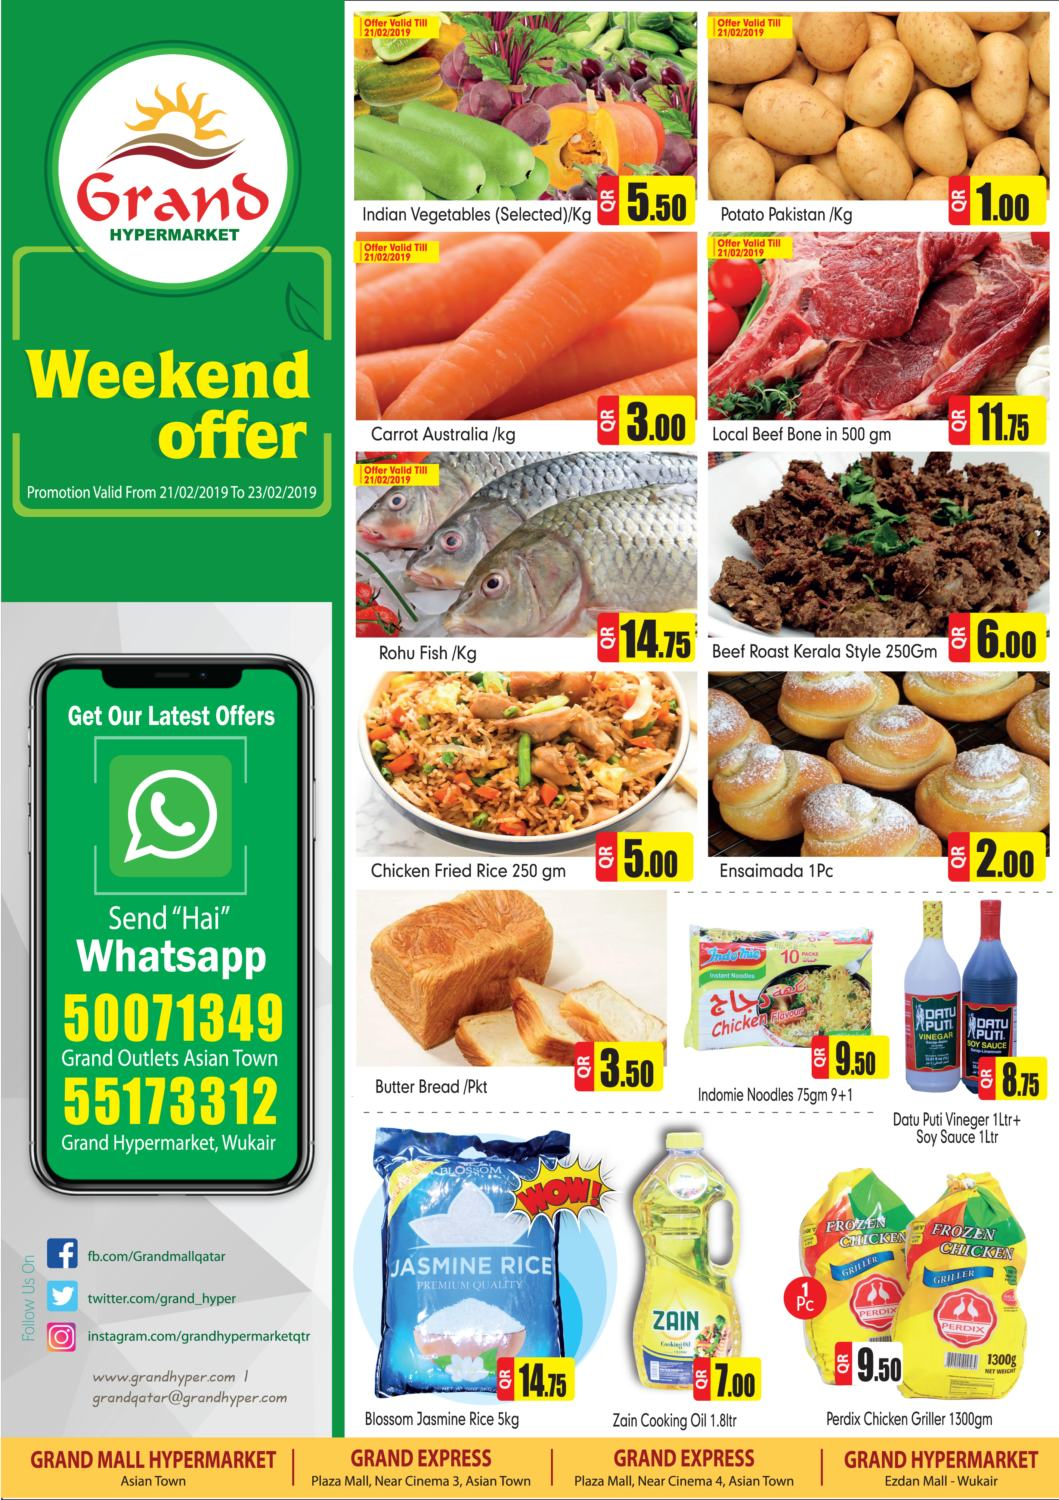 Grand Weekend Offer till 21-02